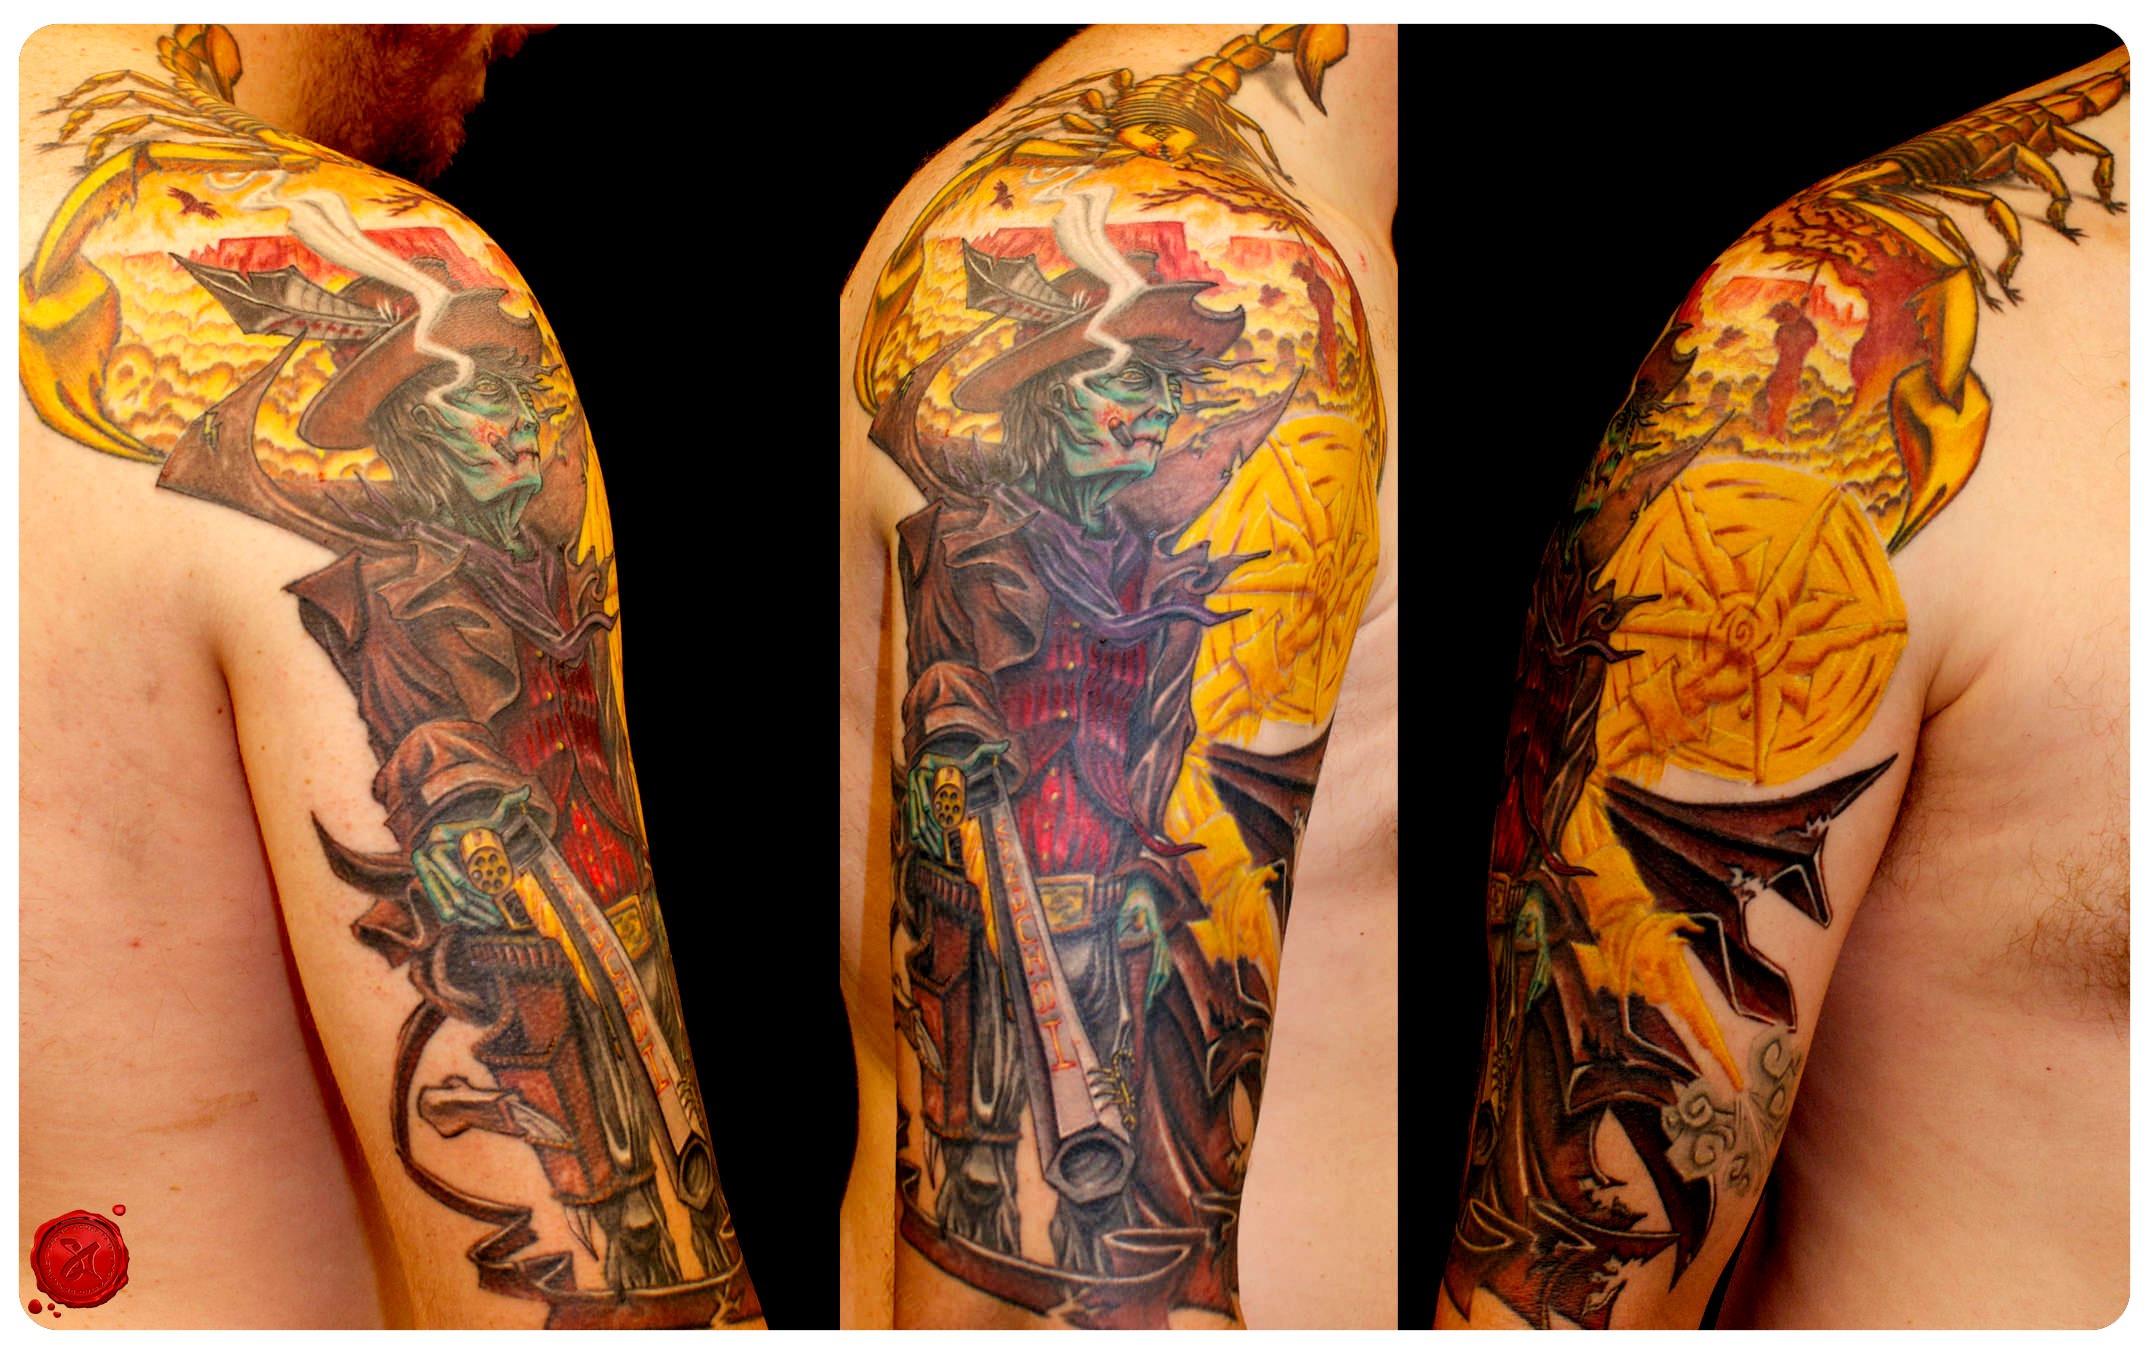 web_post-1_2011_tattoo_arm_zombie-with-six-shooter.jpg